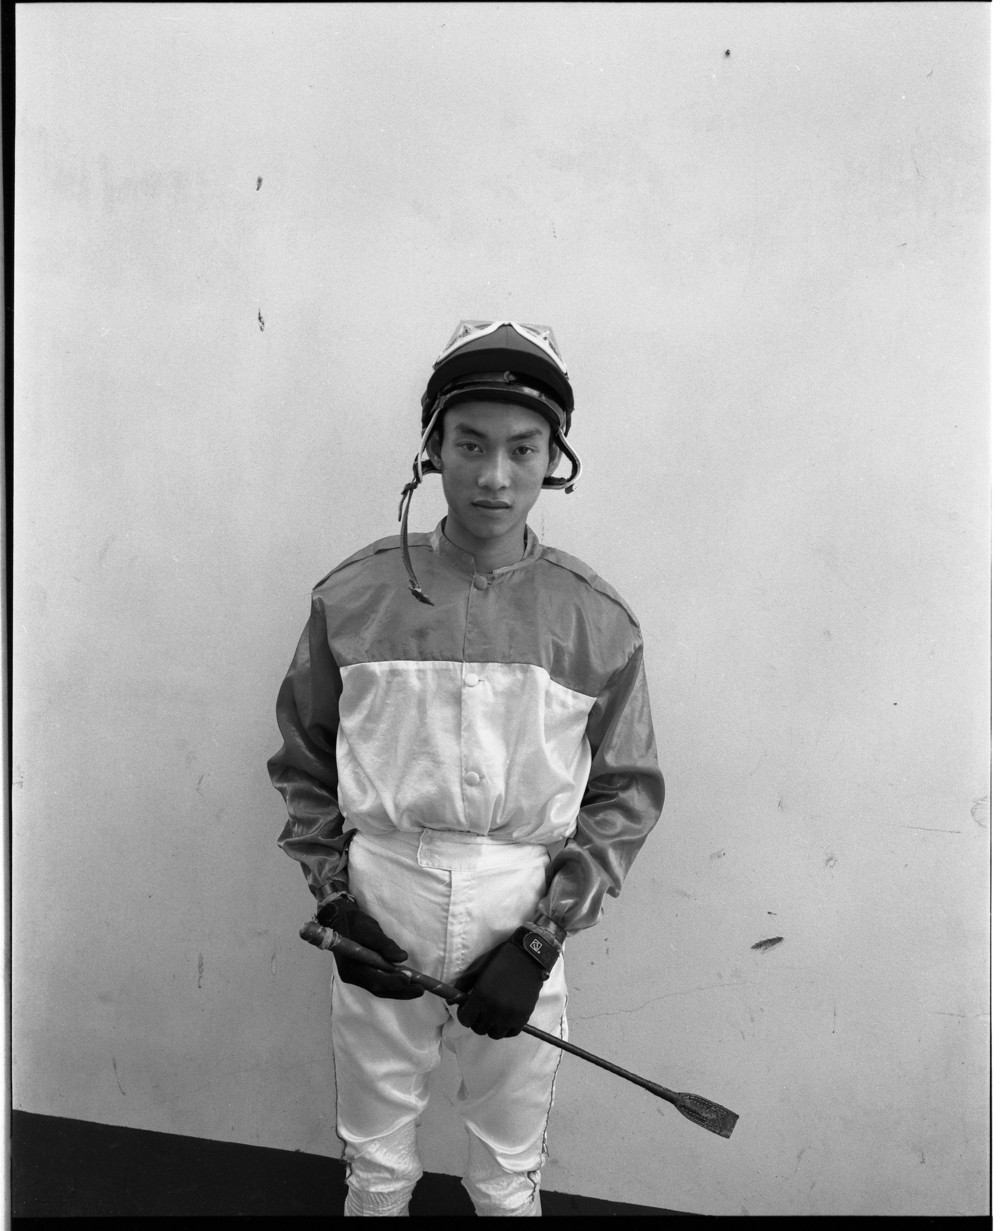 Jockey, Saigon